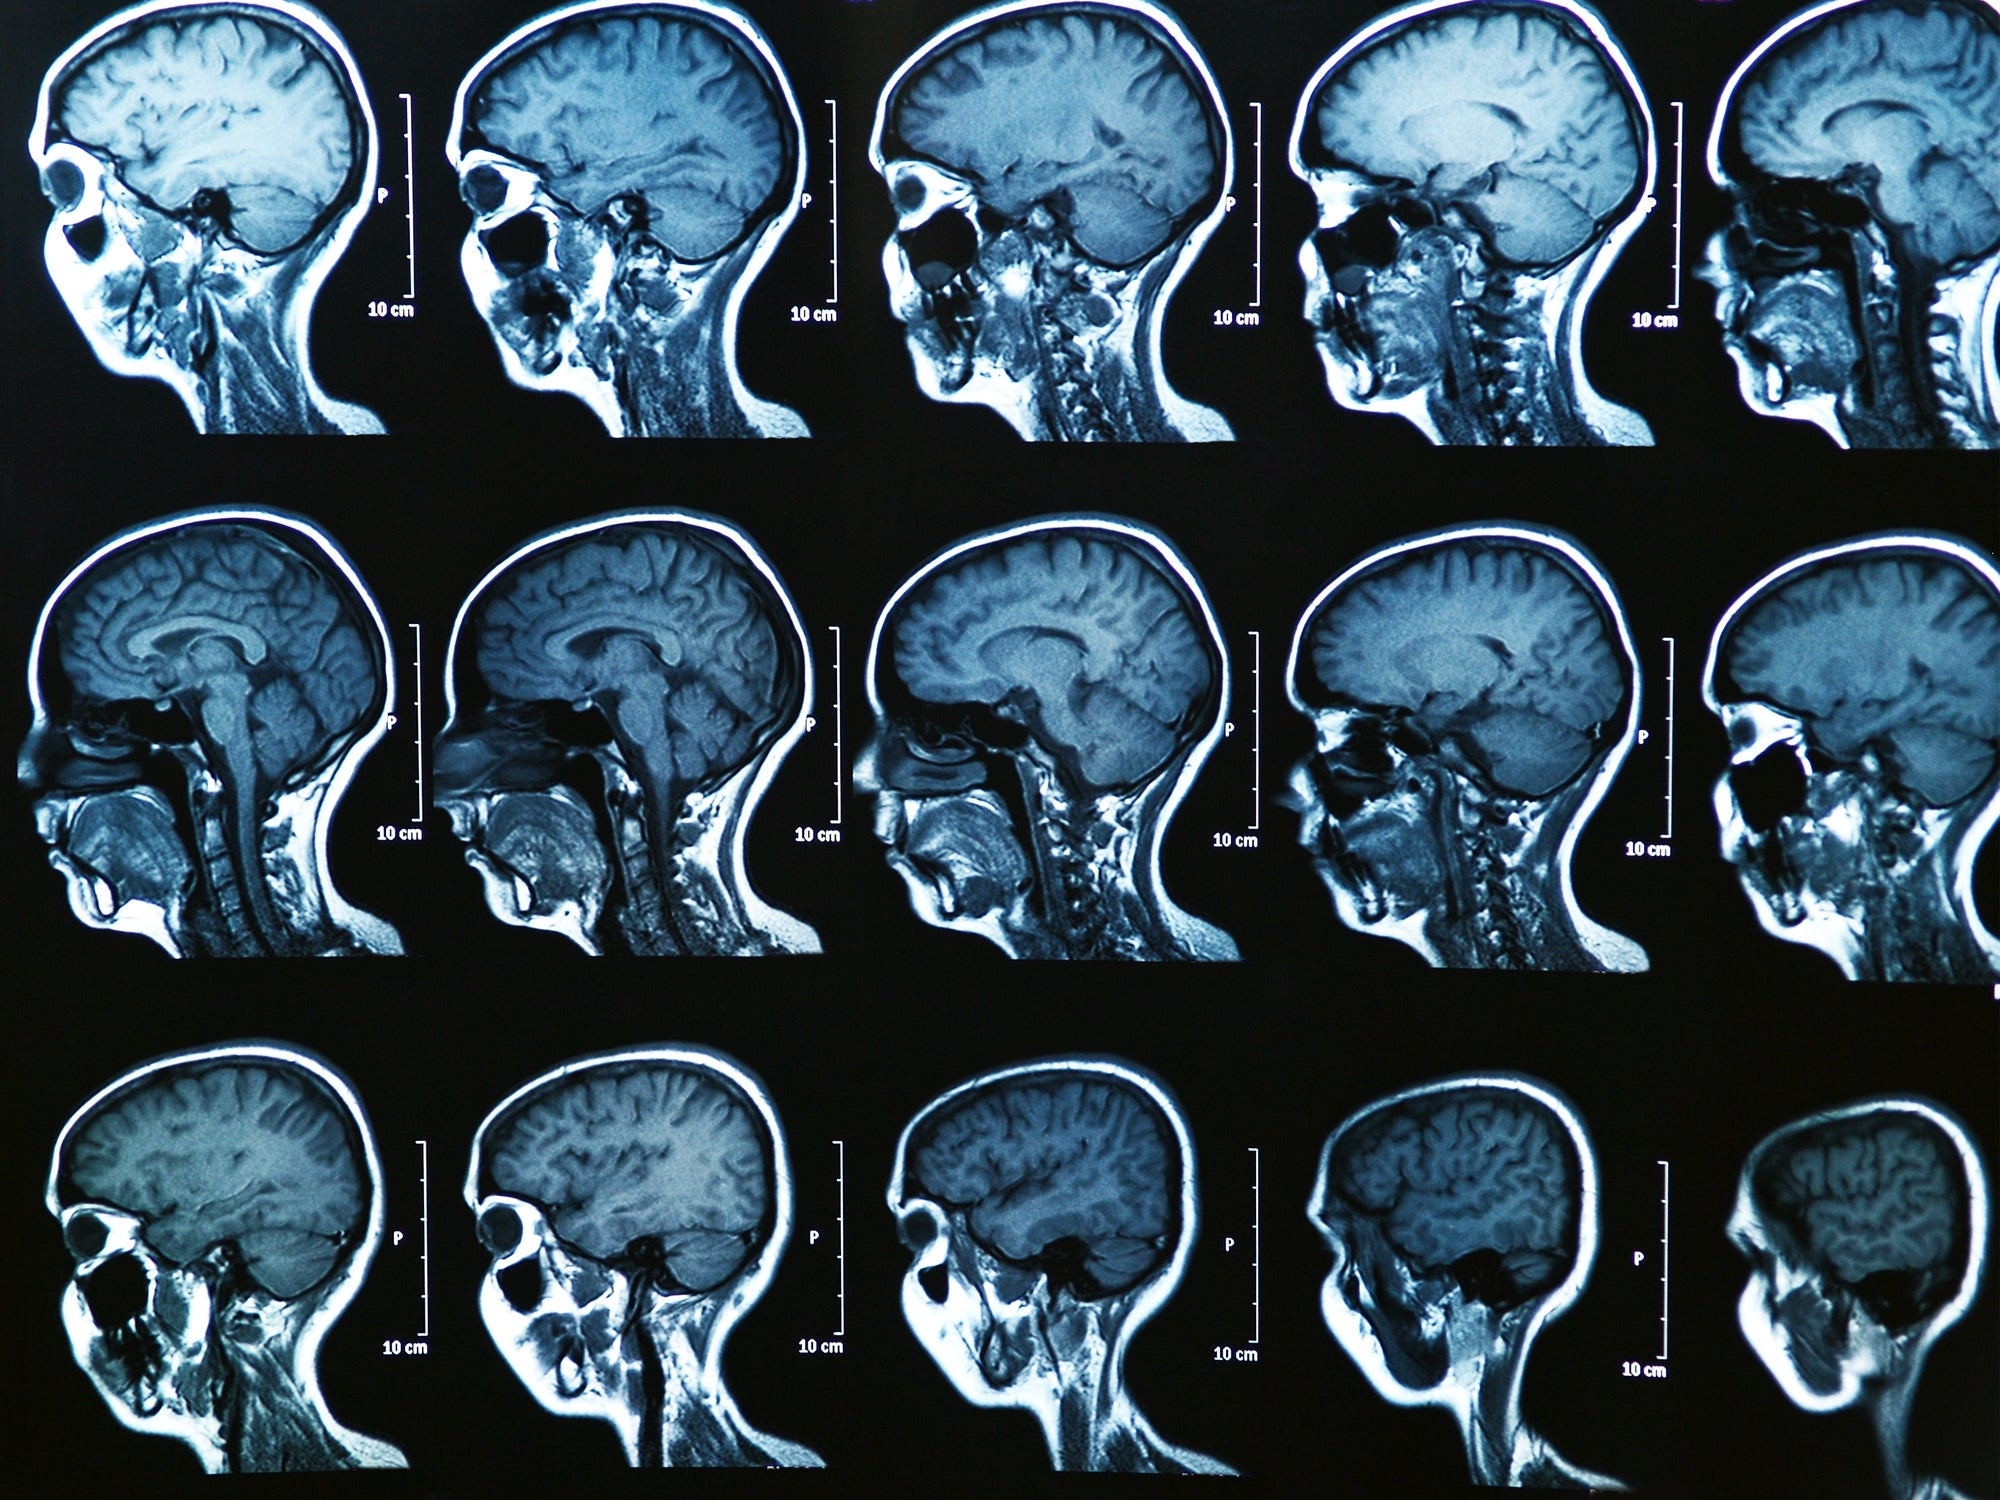 Concussions make lasting changes to the brain, even after you feel fine